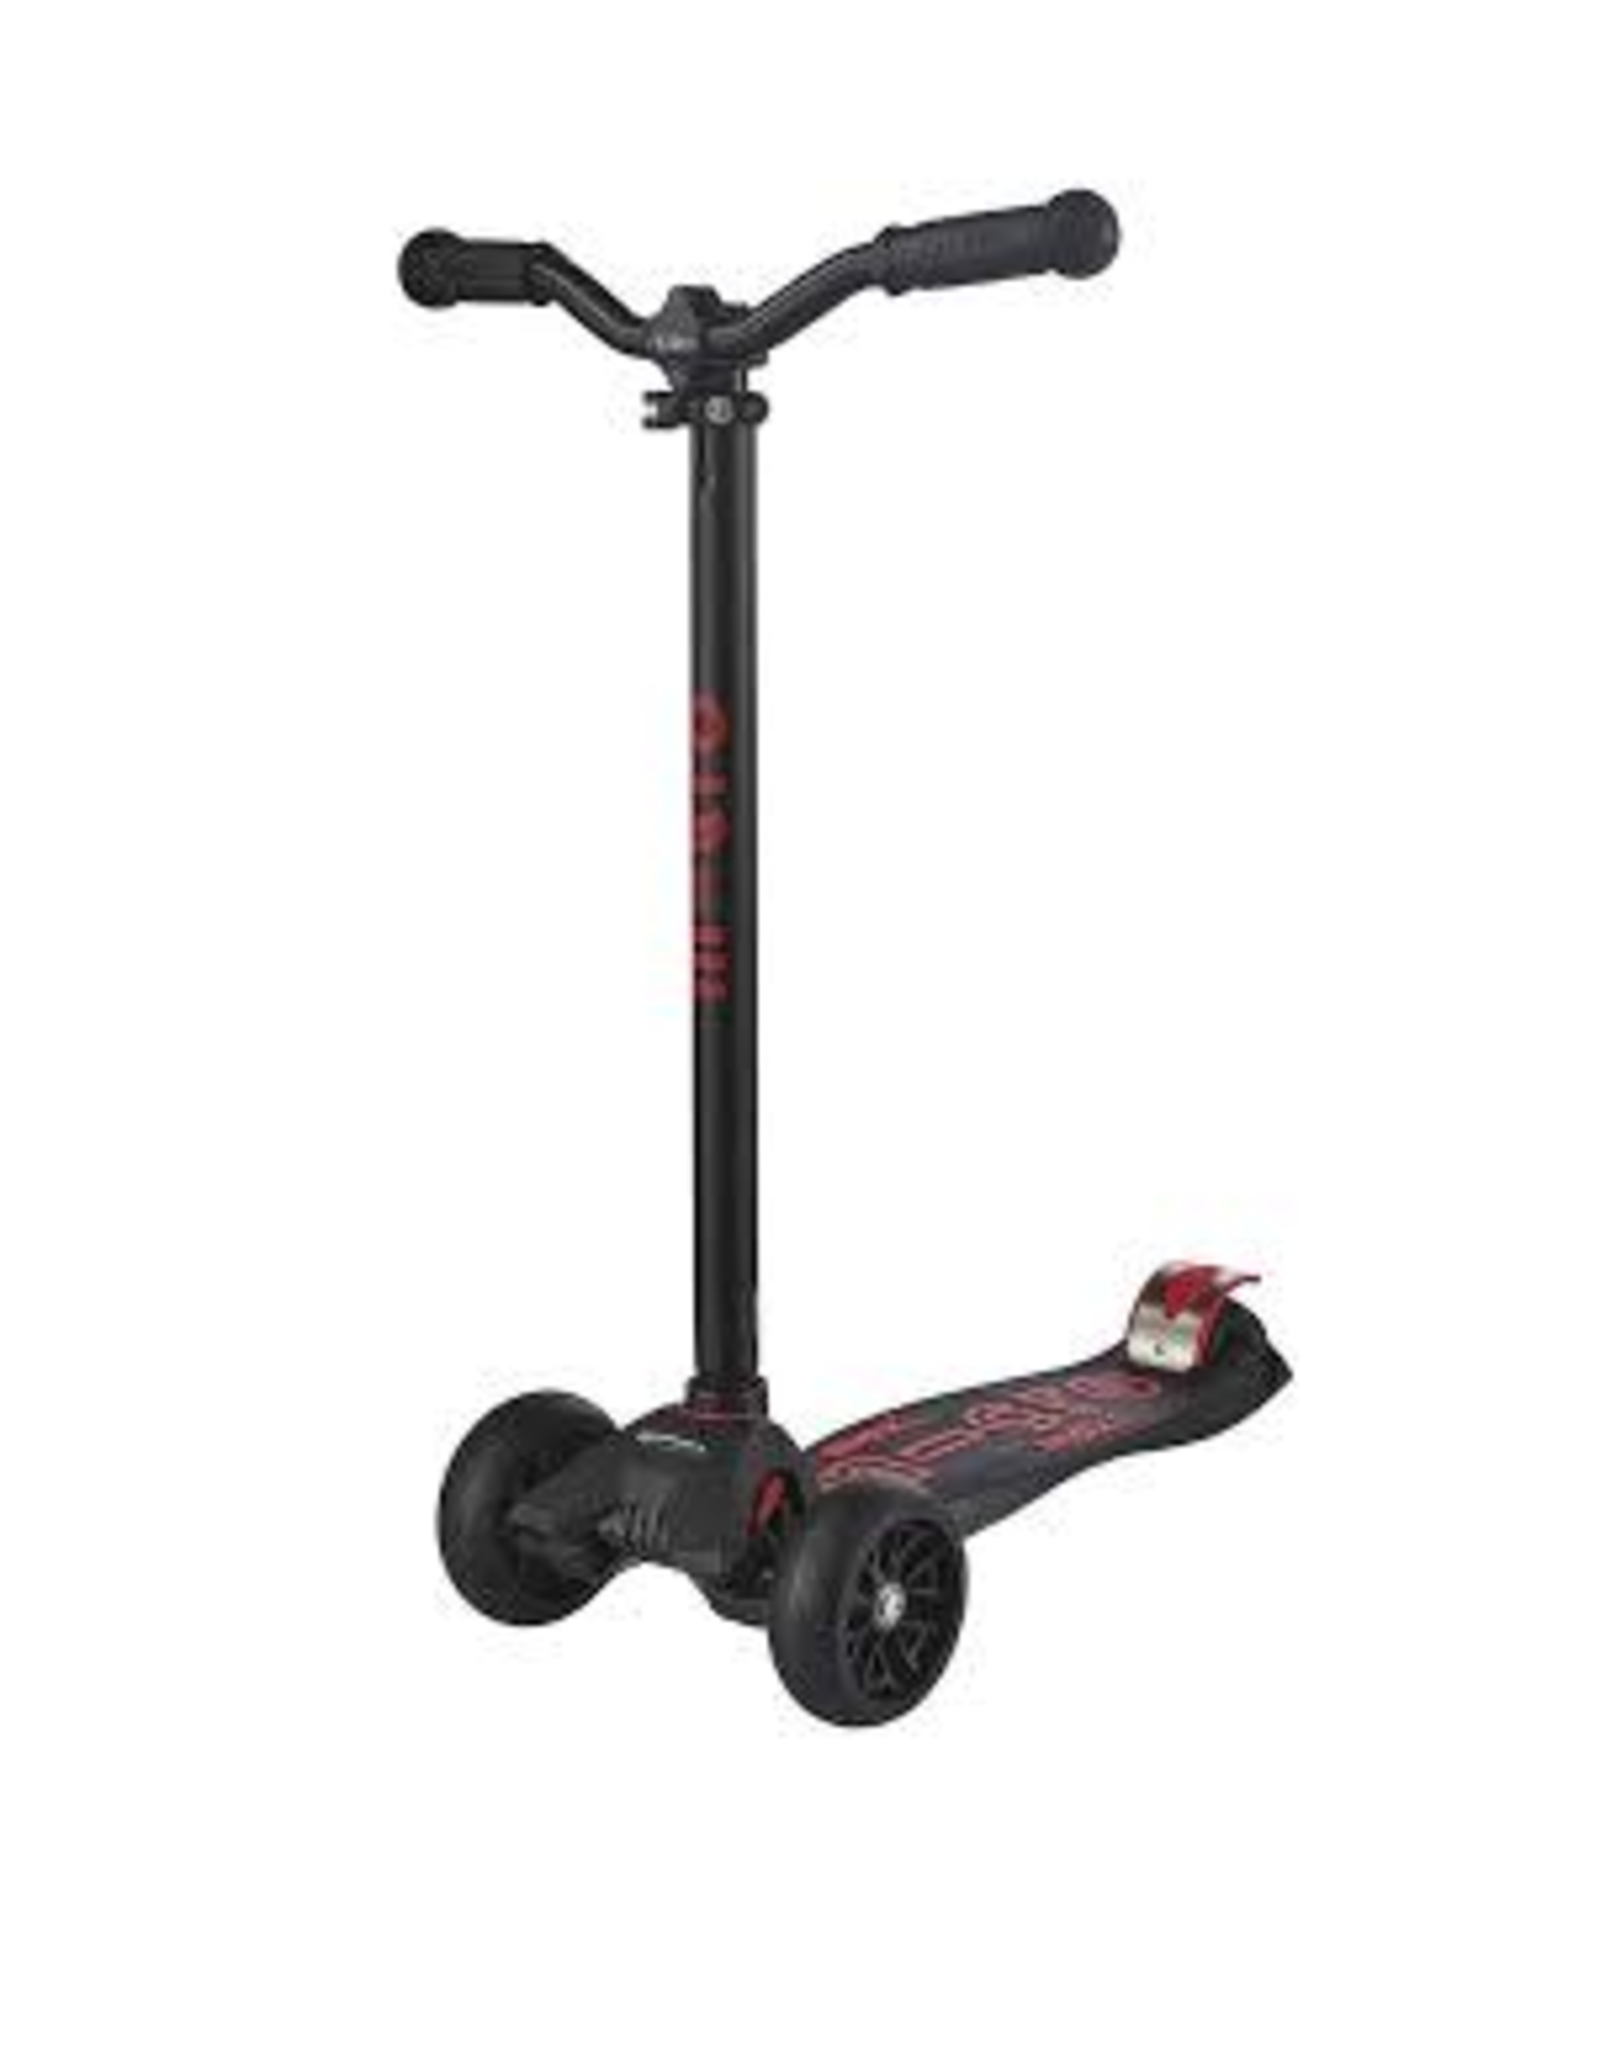 MAXI DELUXE PRO MICRO SCOOTER BLACK/RED